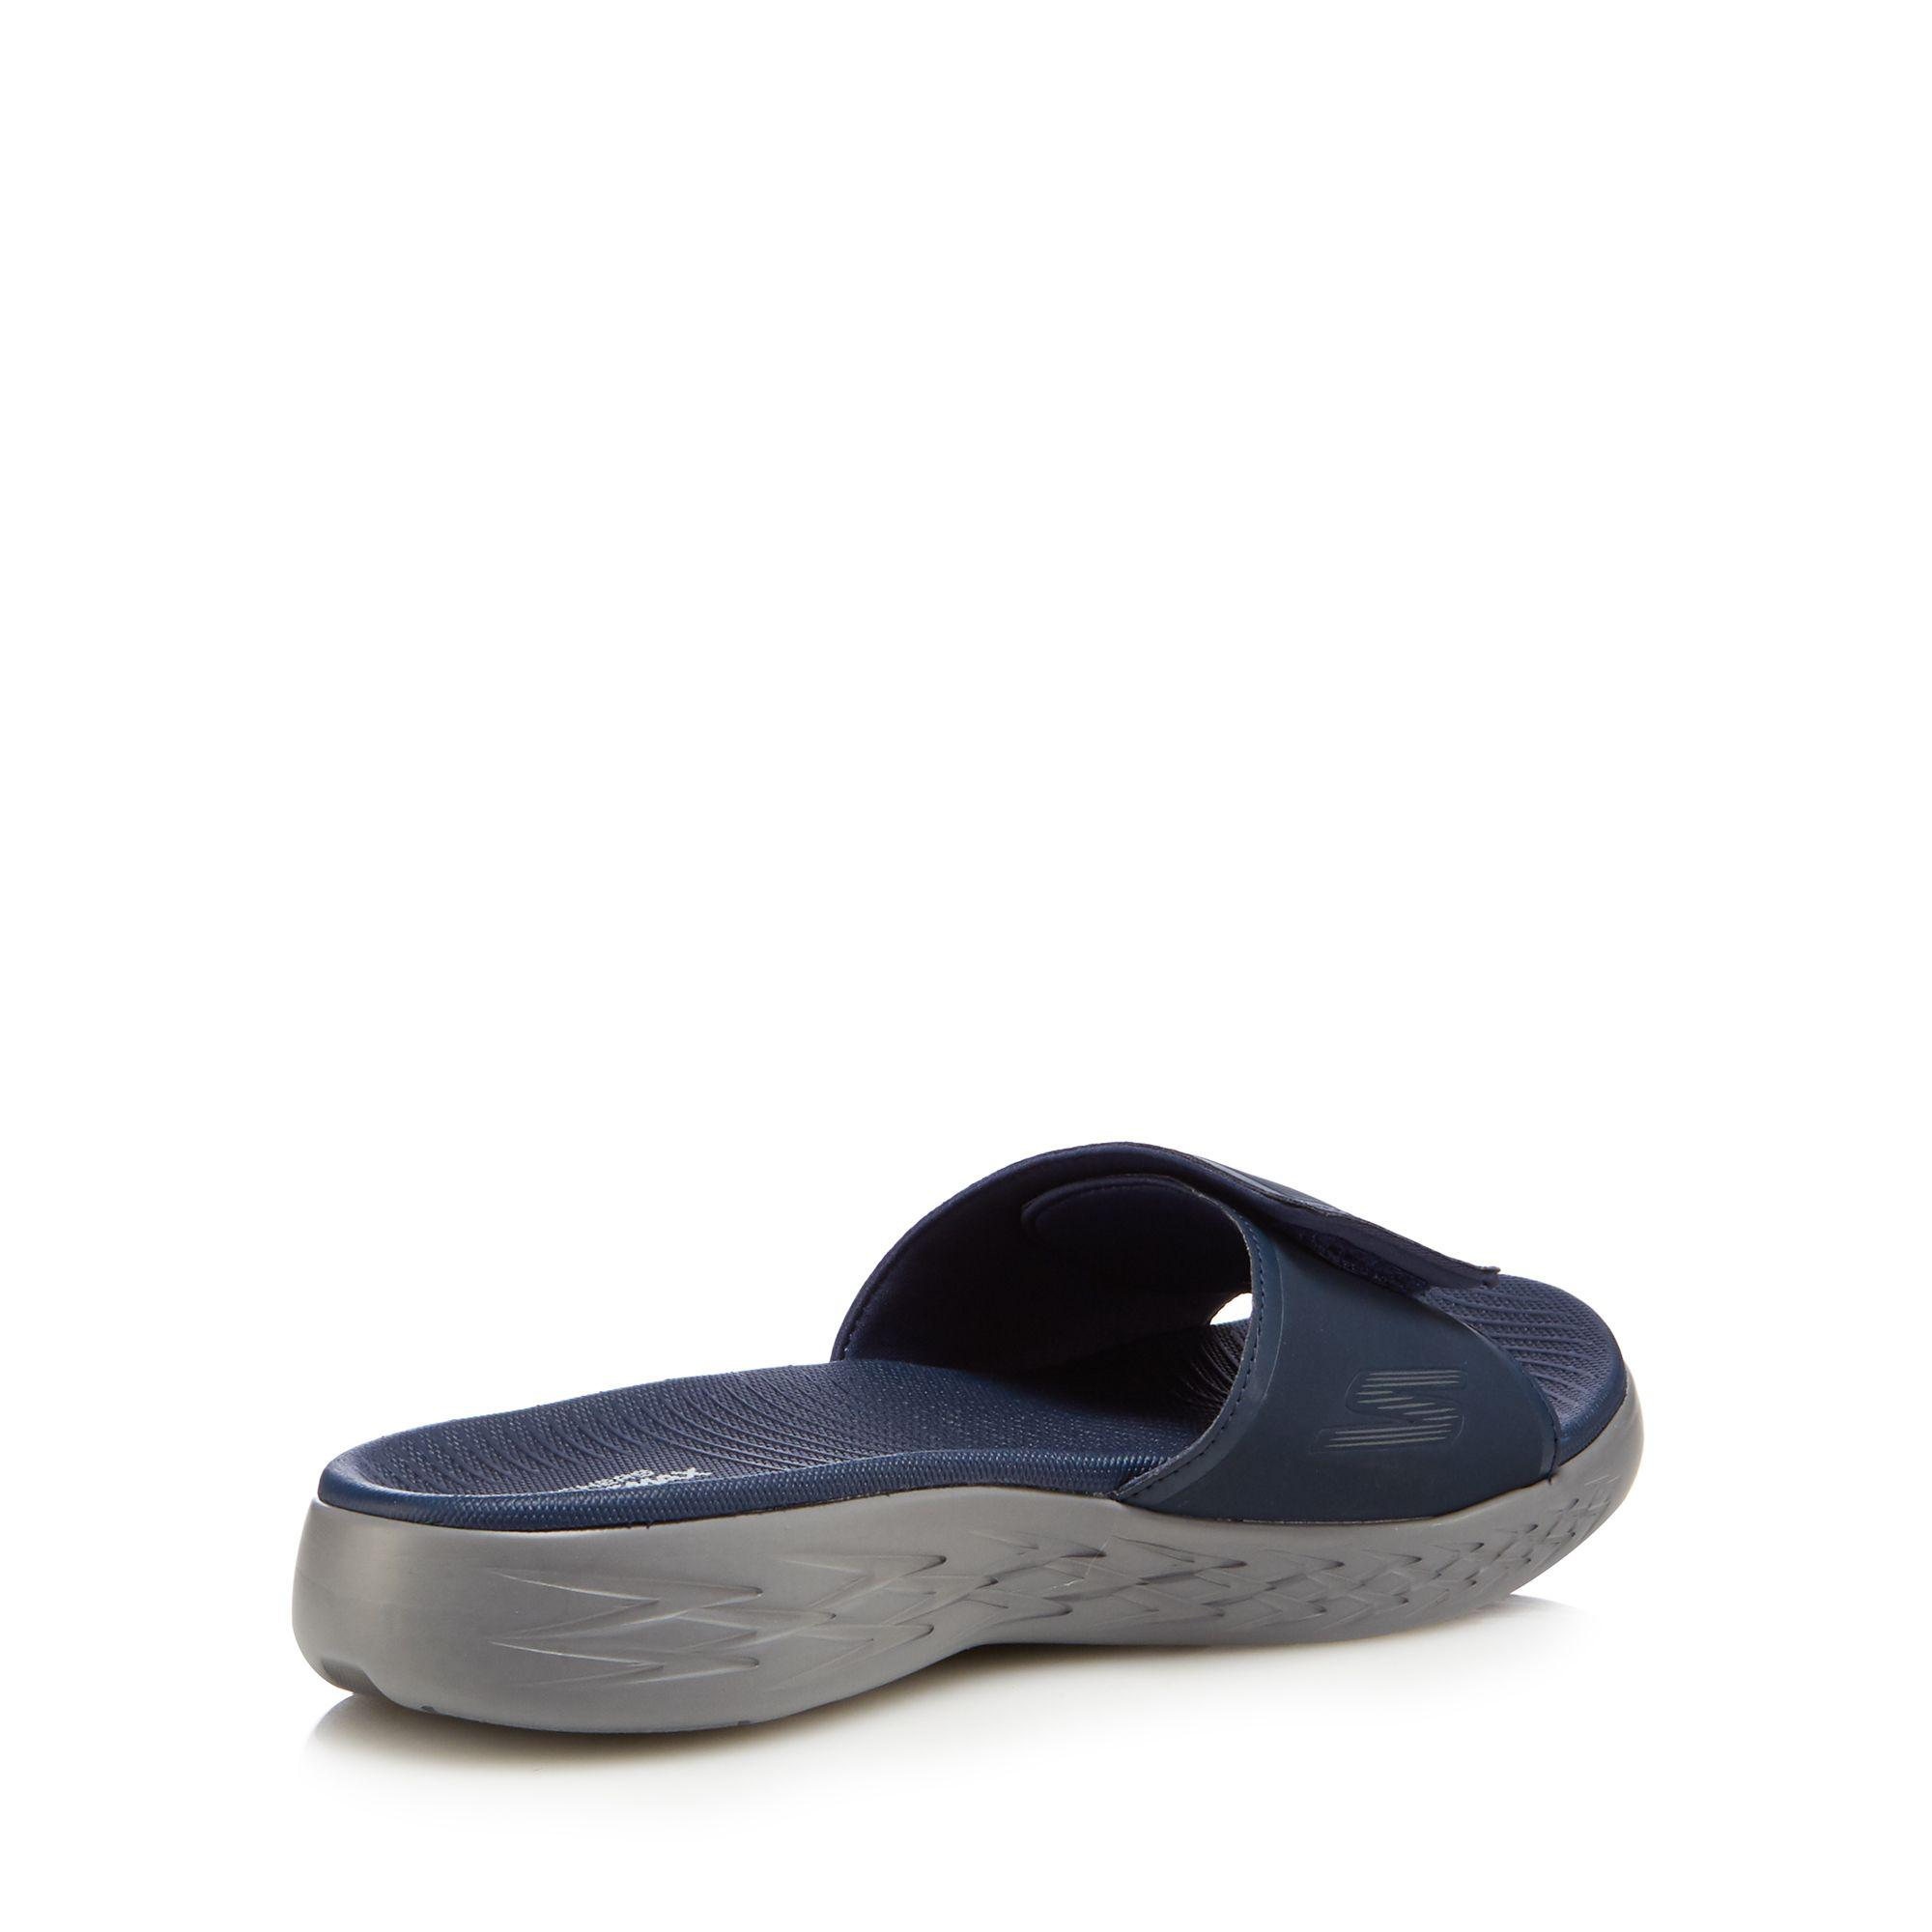 Navy 'Vancouver II' sliders outlet locations online discount 100% original 4n60A1